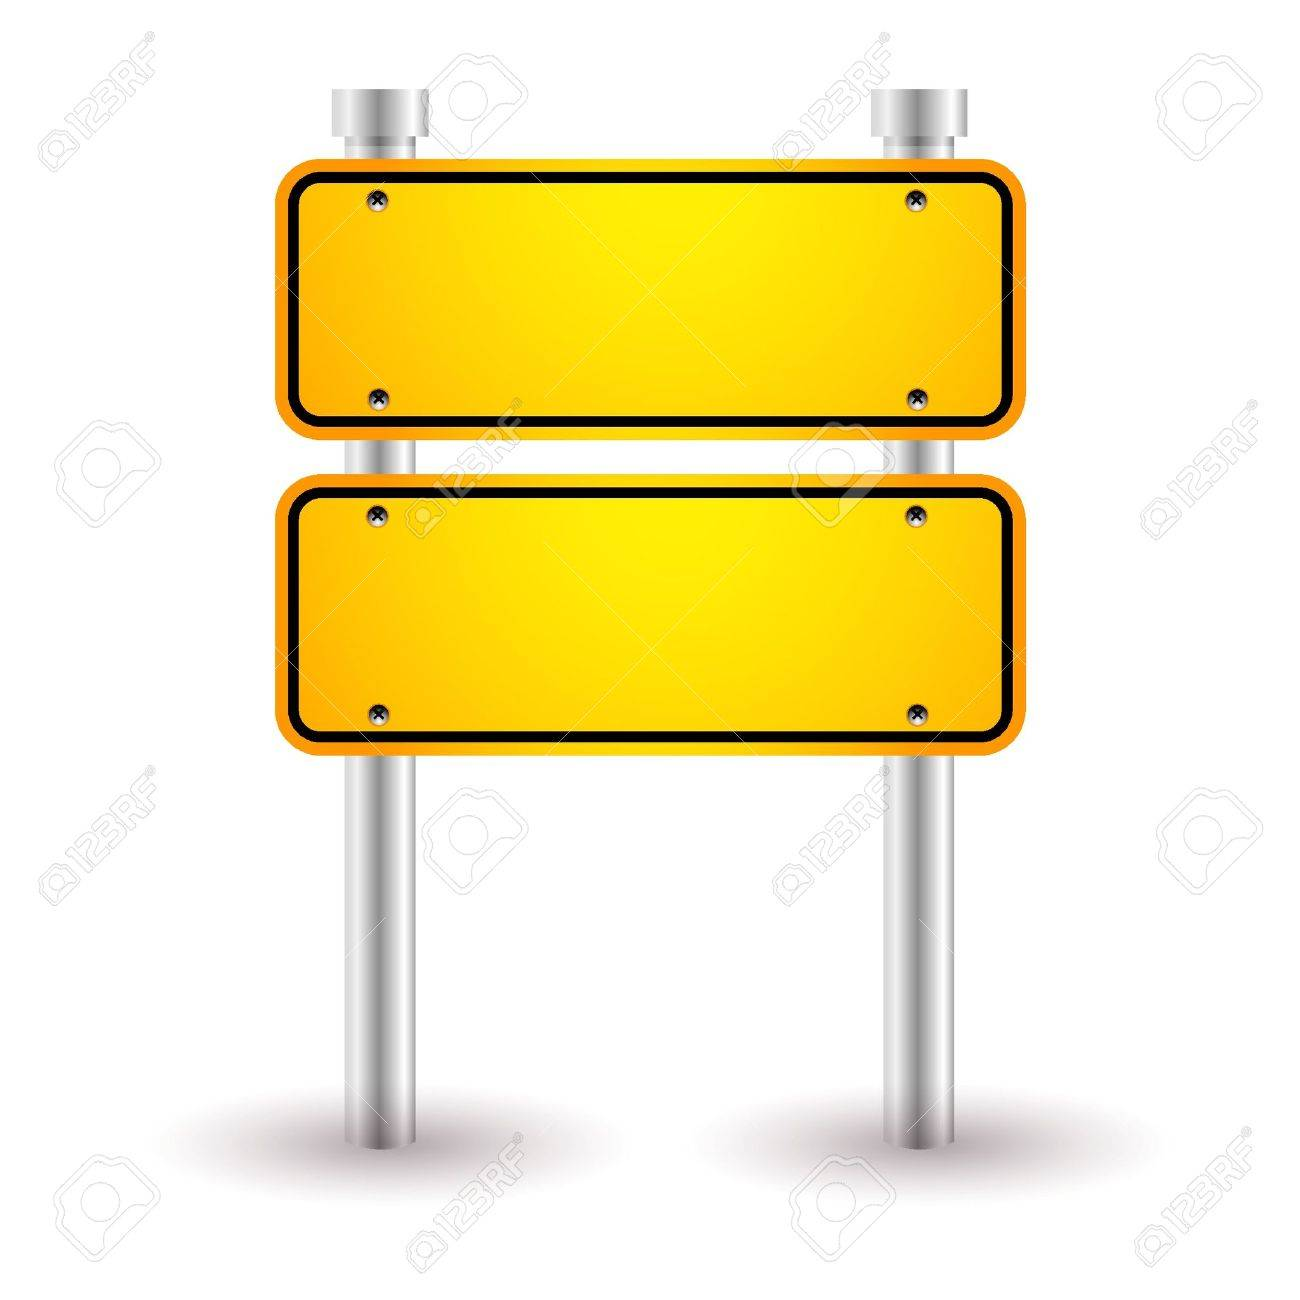 yellow blank road sign.